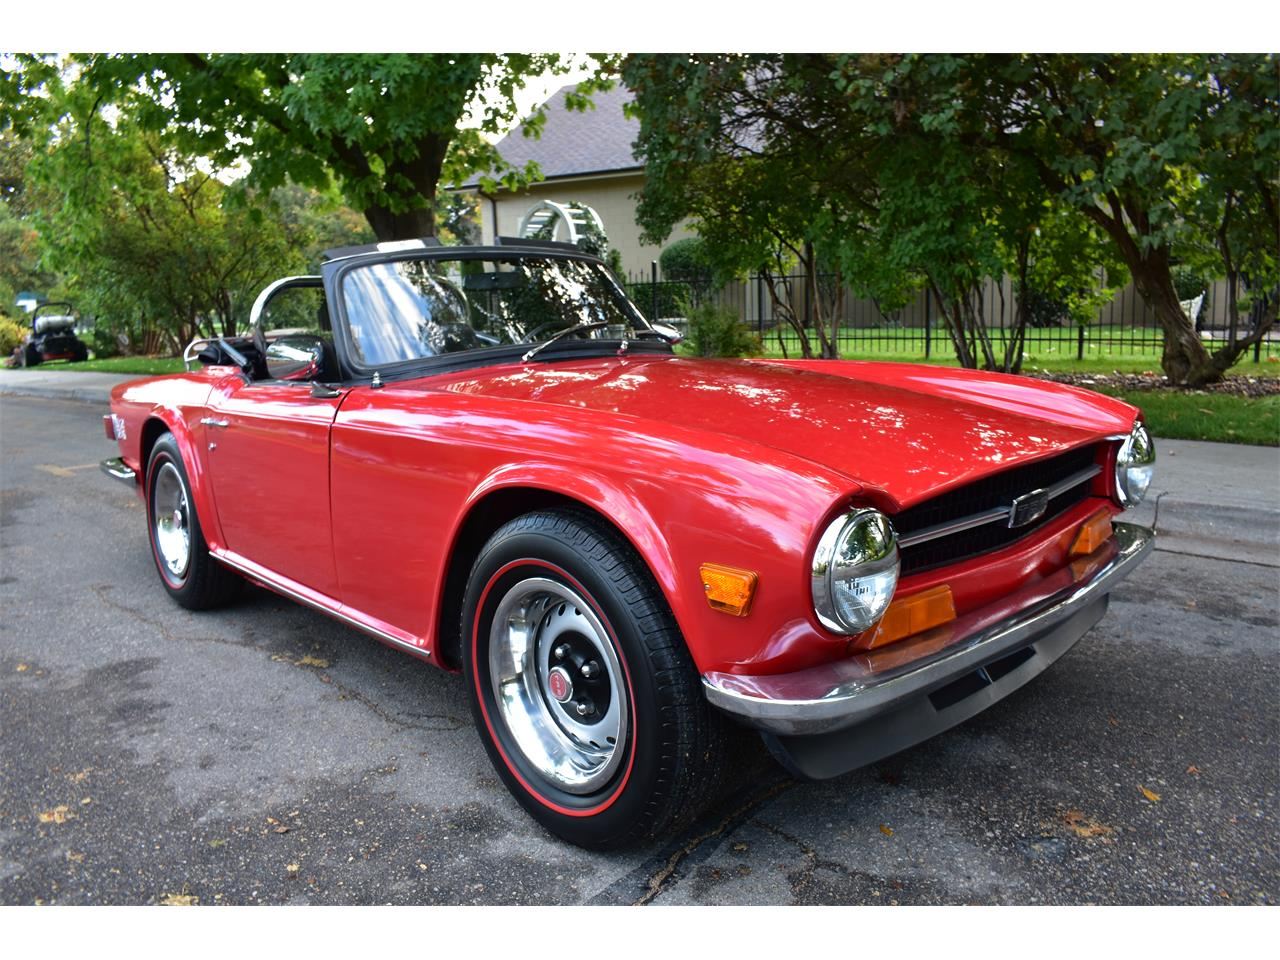 74 Tr6 Wiring Diagram, Large Picture Of 74 Tr6 Oqp3, 74 Tr6 Wiring Diagram